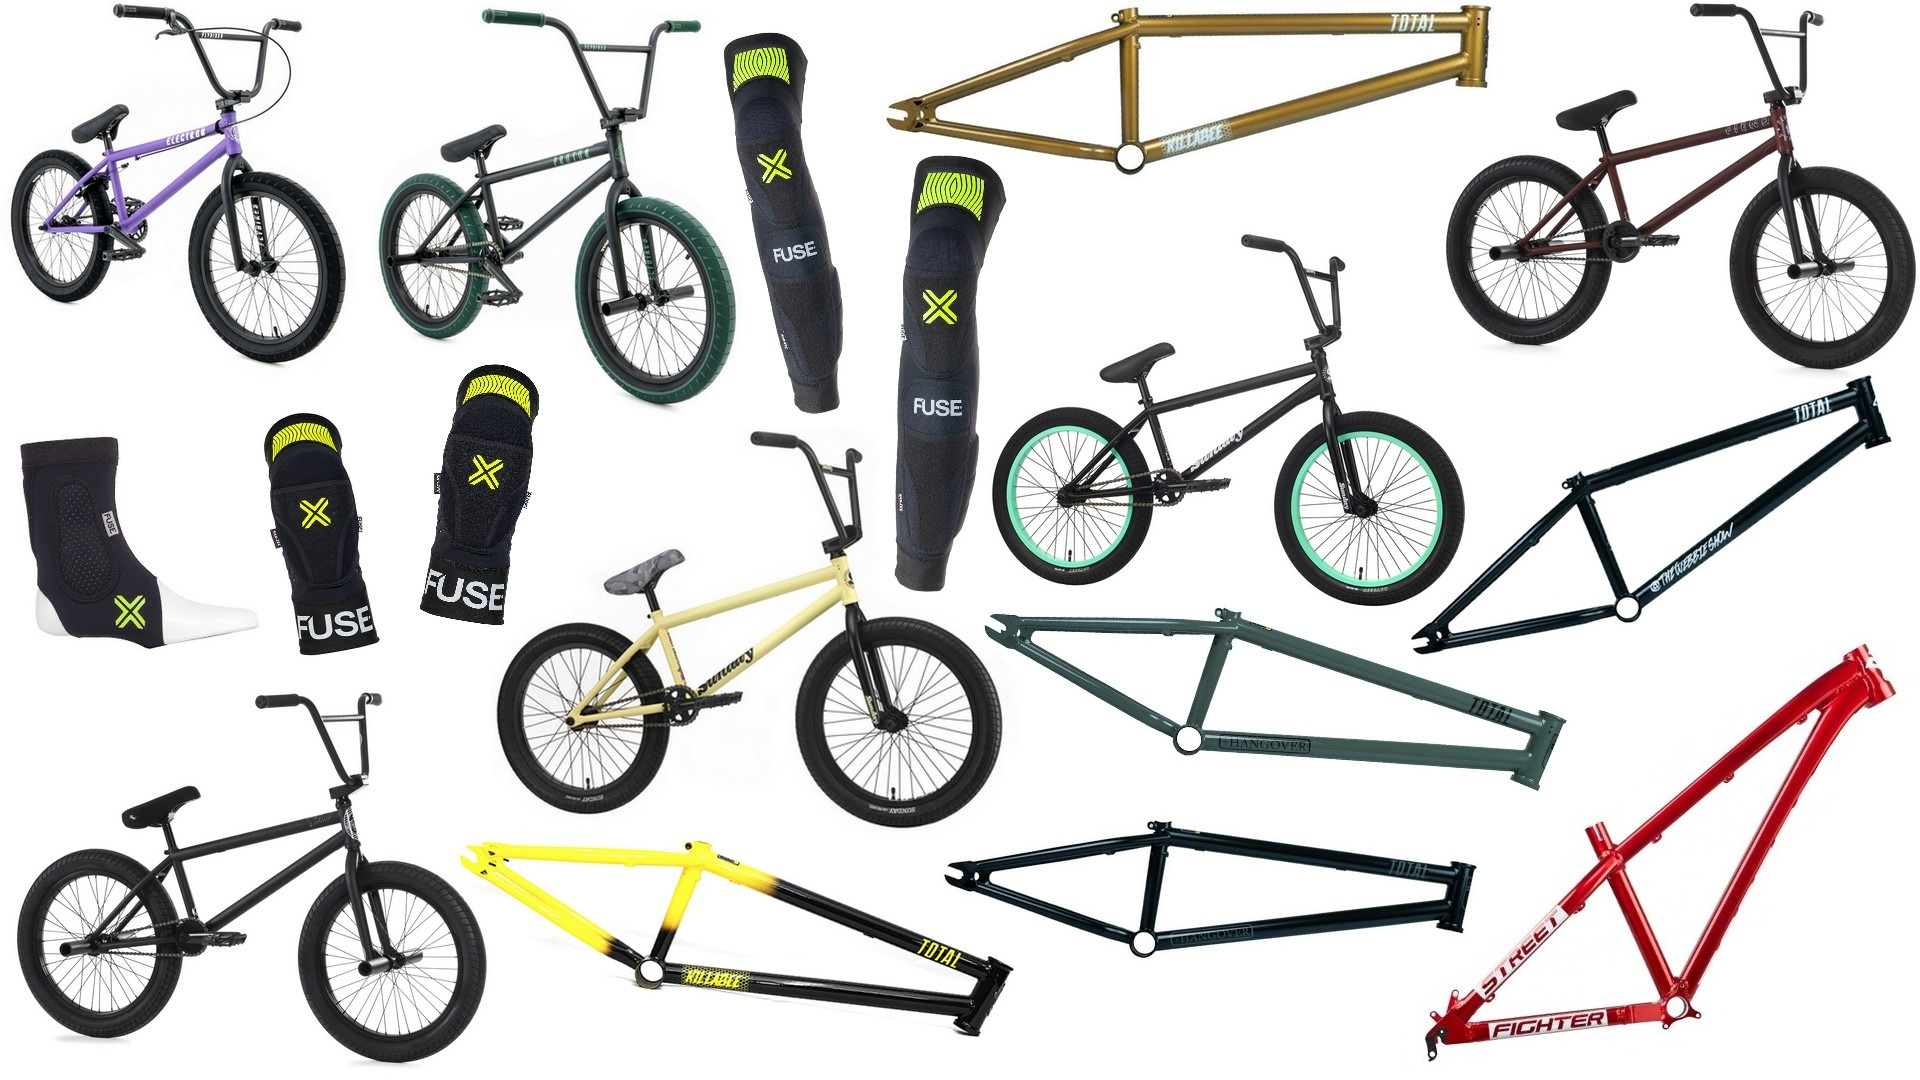 JUNKRIDE SHOP NEWS | FEBRUARY 2020 | FLYBIKES, SUNDAY, TOTAL BMX, FIEND